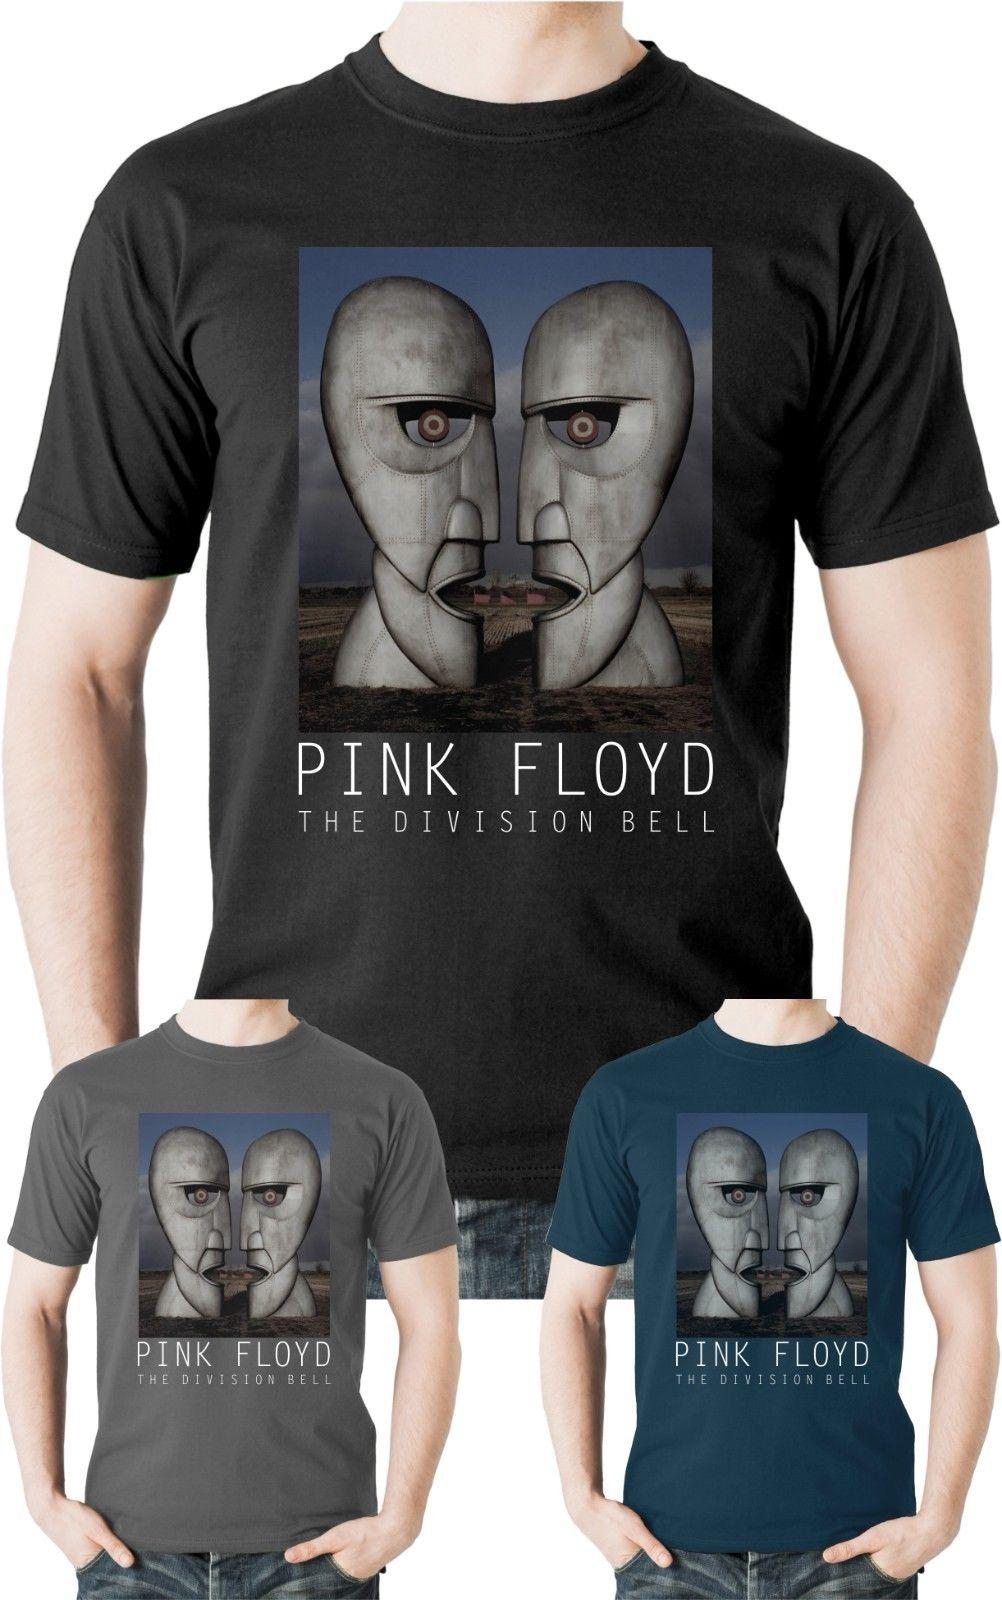 276fb079db2722 Pink Floyd The Division Bell T Shirt British Rock Music Band Tee Top  MerchandiseFunny Unisex Tee Buy A T Shirt The Coolest T Shirts From  Topclassaa